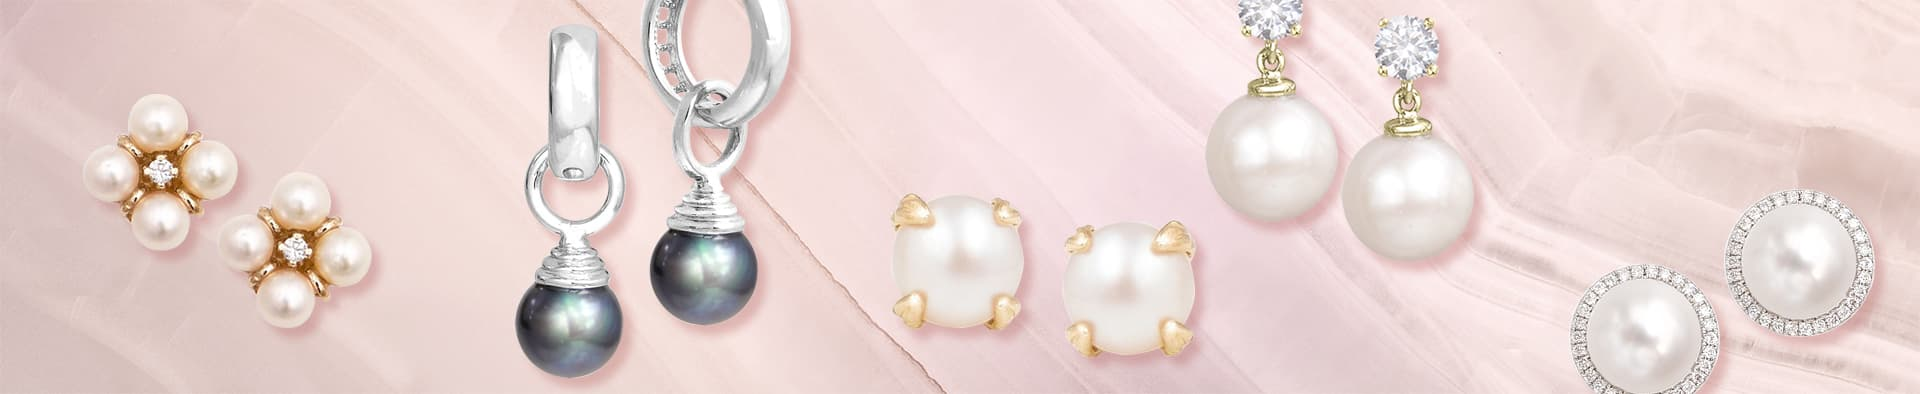 Lovely pearl earrings